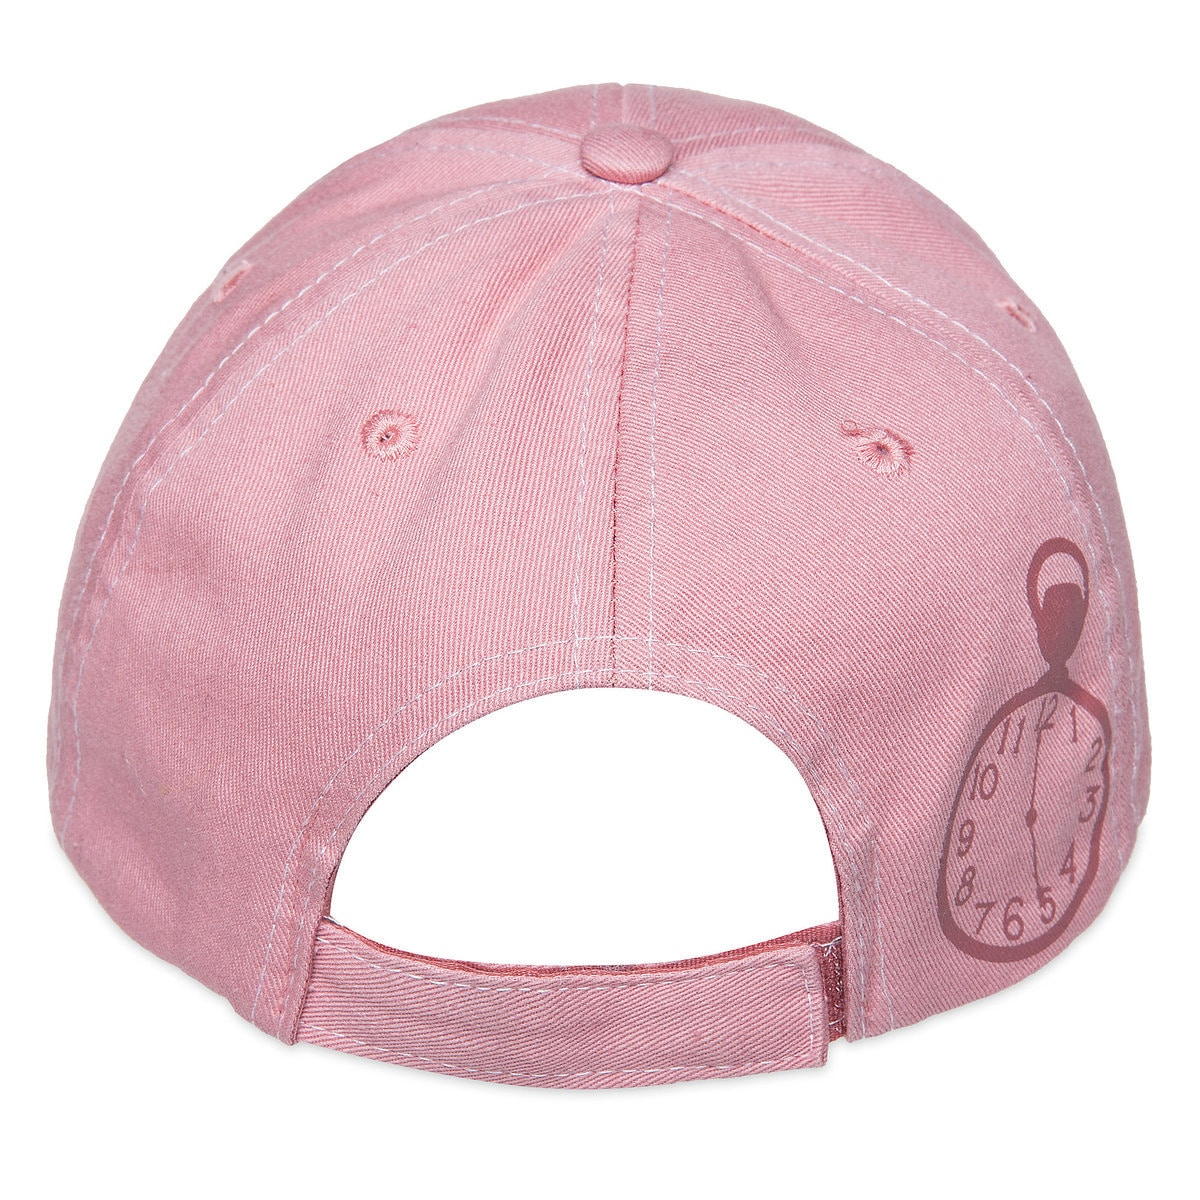 2c9439e6e67 Product Image of White Rabbit   Late For Everything   Baseball Cap for  Adults